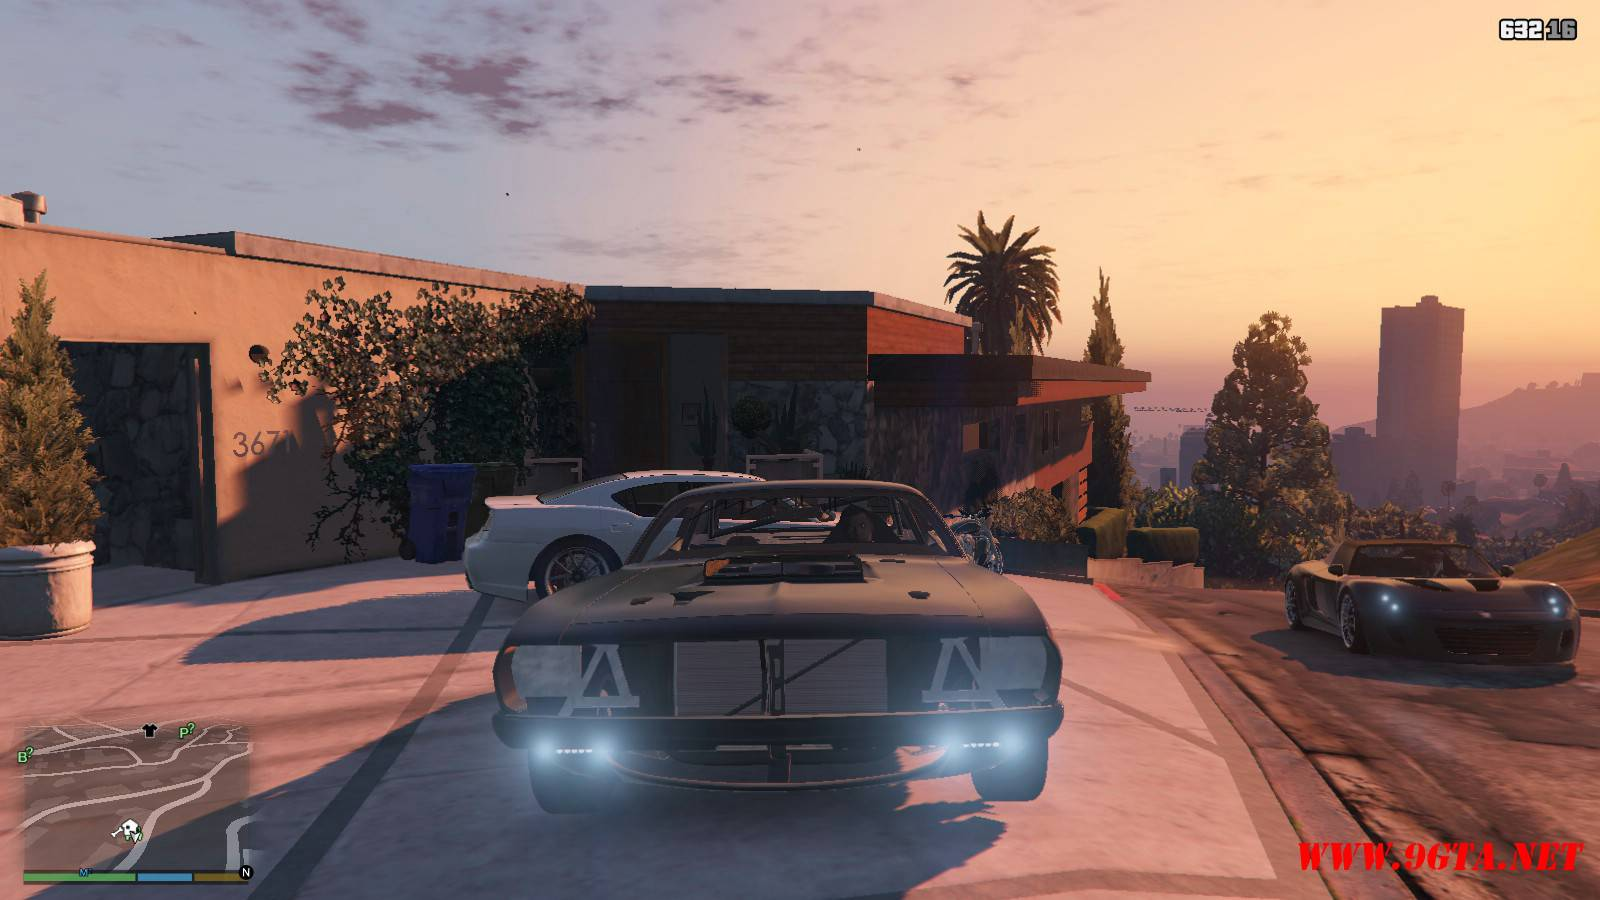 Plymouth Kuda Beck Customs Mod For GTA5 (10)